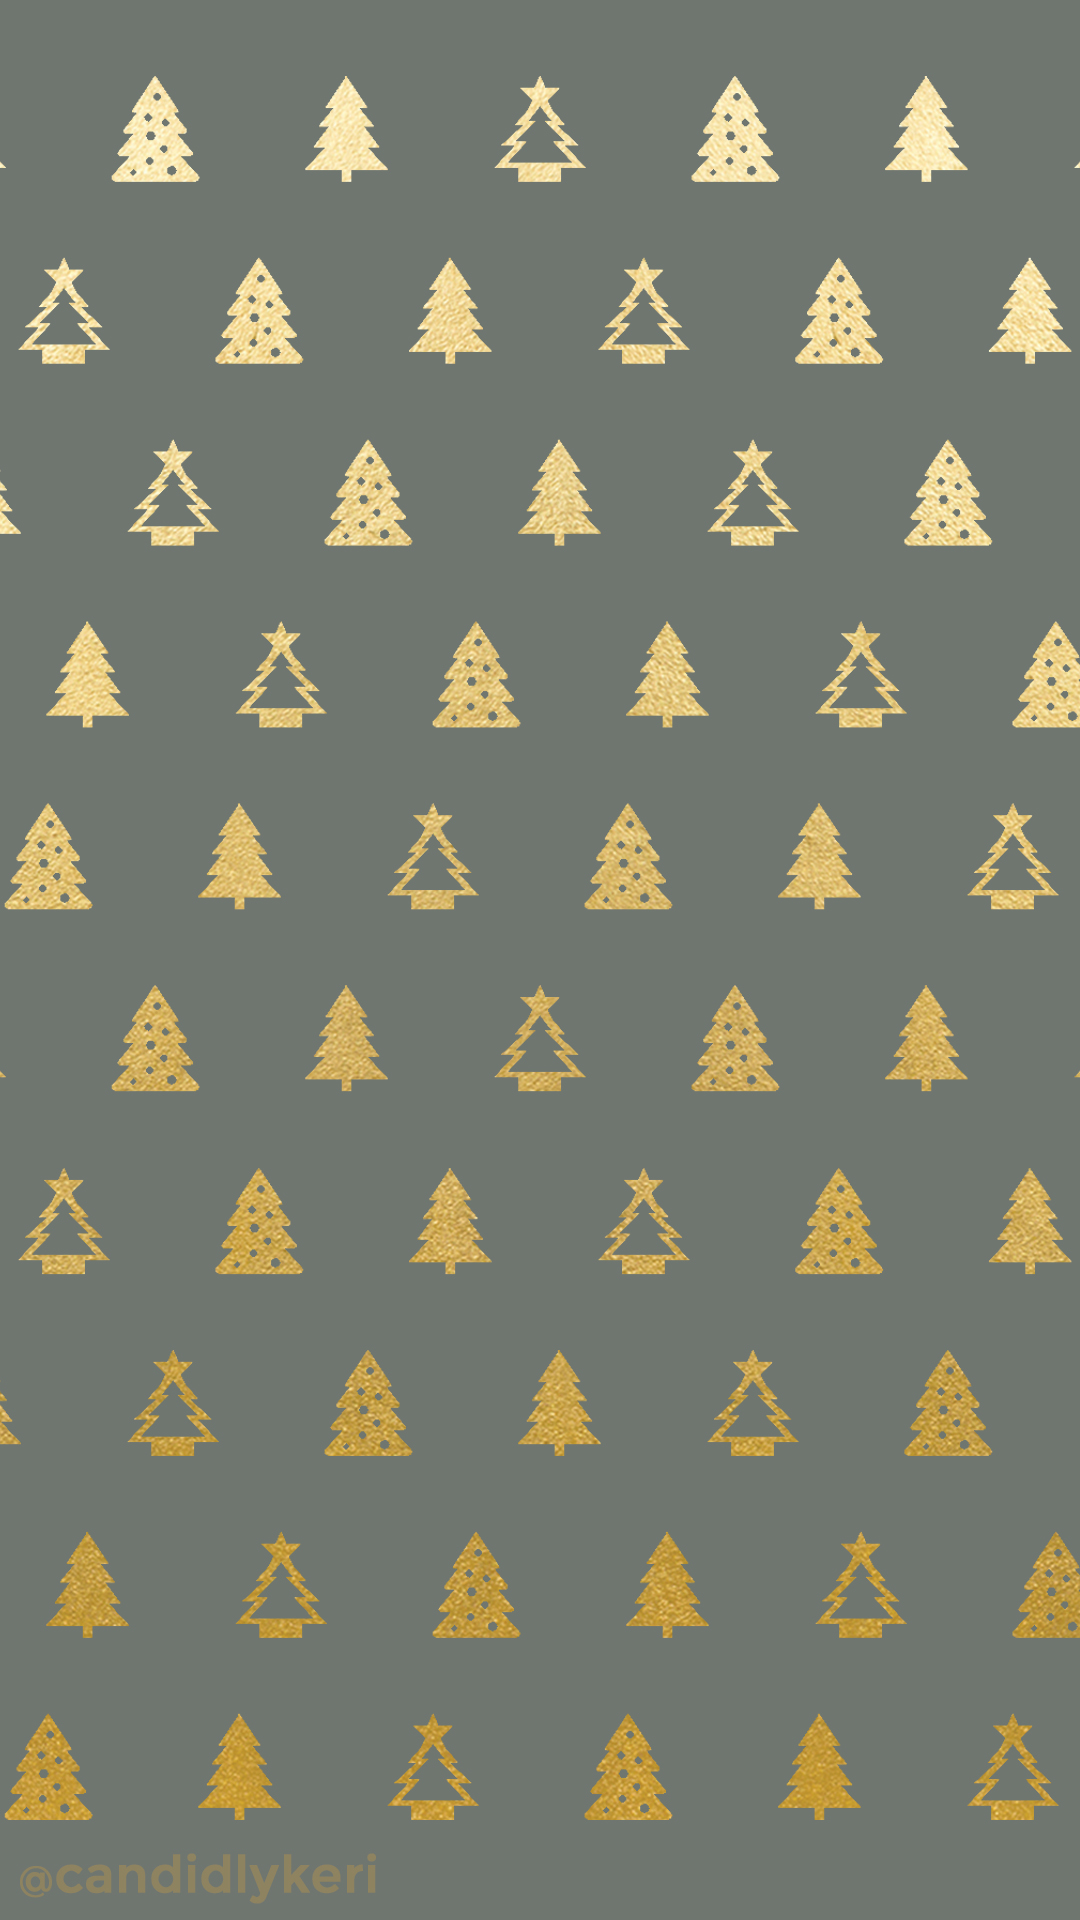 Christmas-tree-gold-foil-green-background-you-can-download-for-free-on-the-blog-For-any-d-wallpaper-wpc9003546